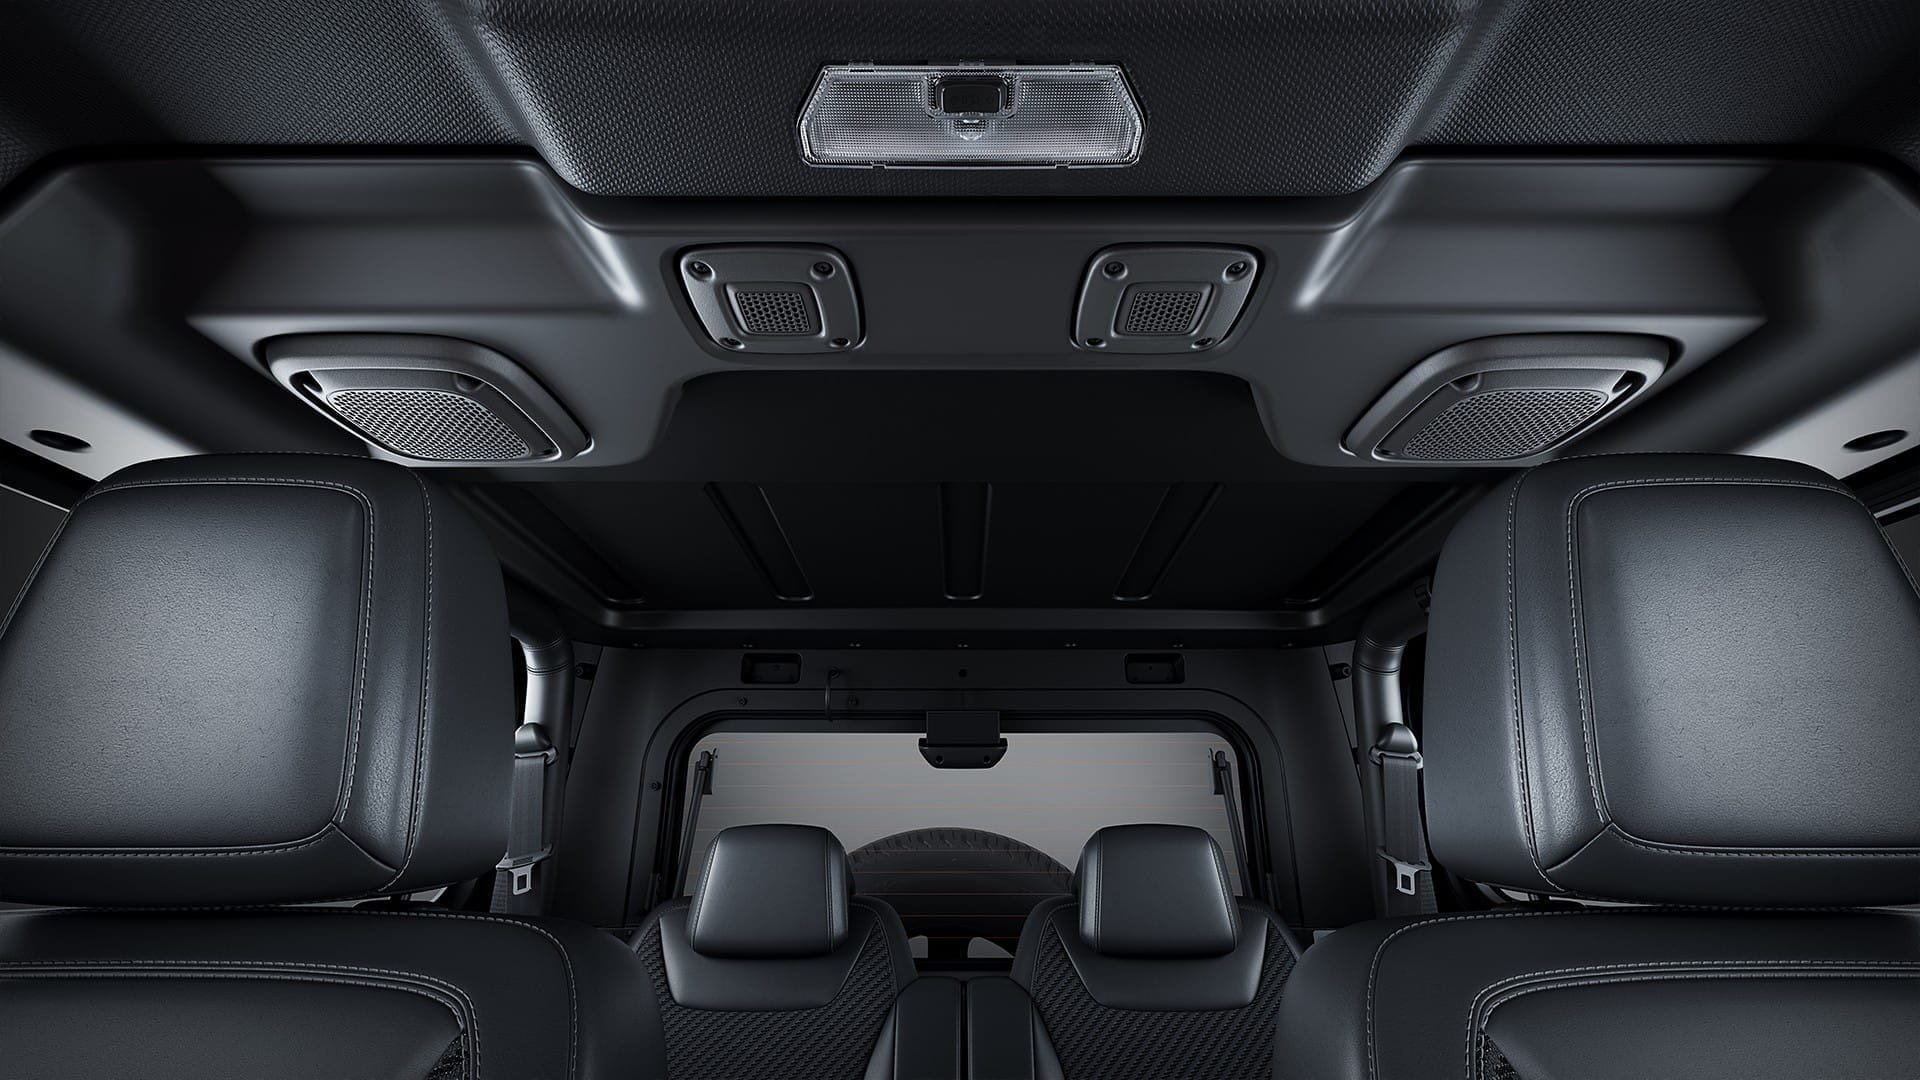 The Hard Top roof version of Thar 2020 features speakers mounted above.